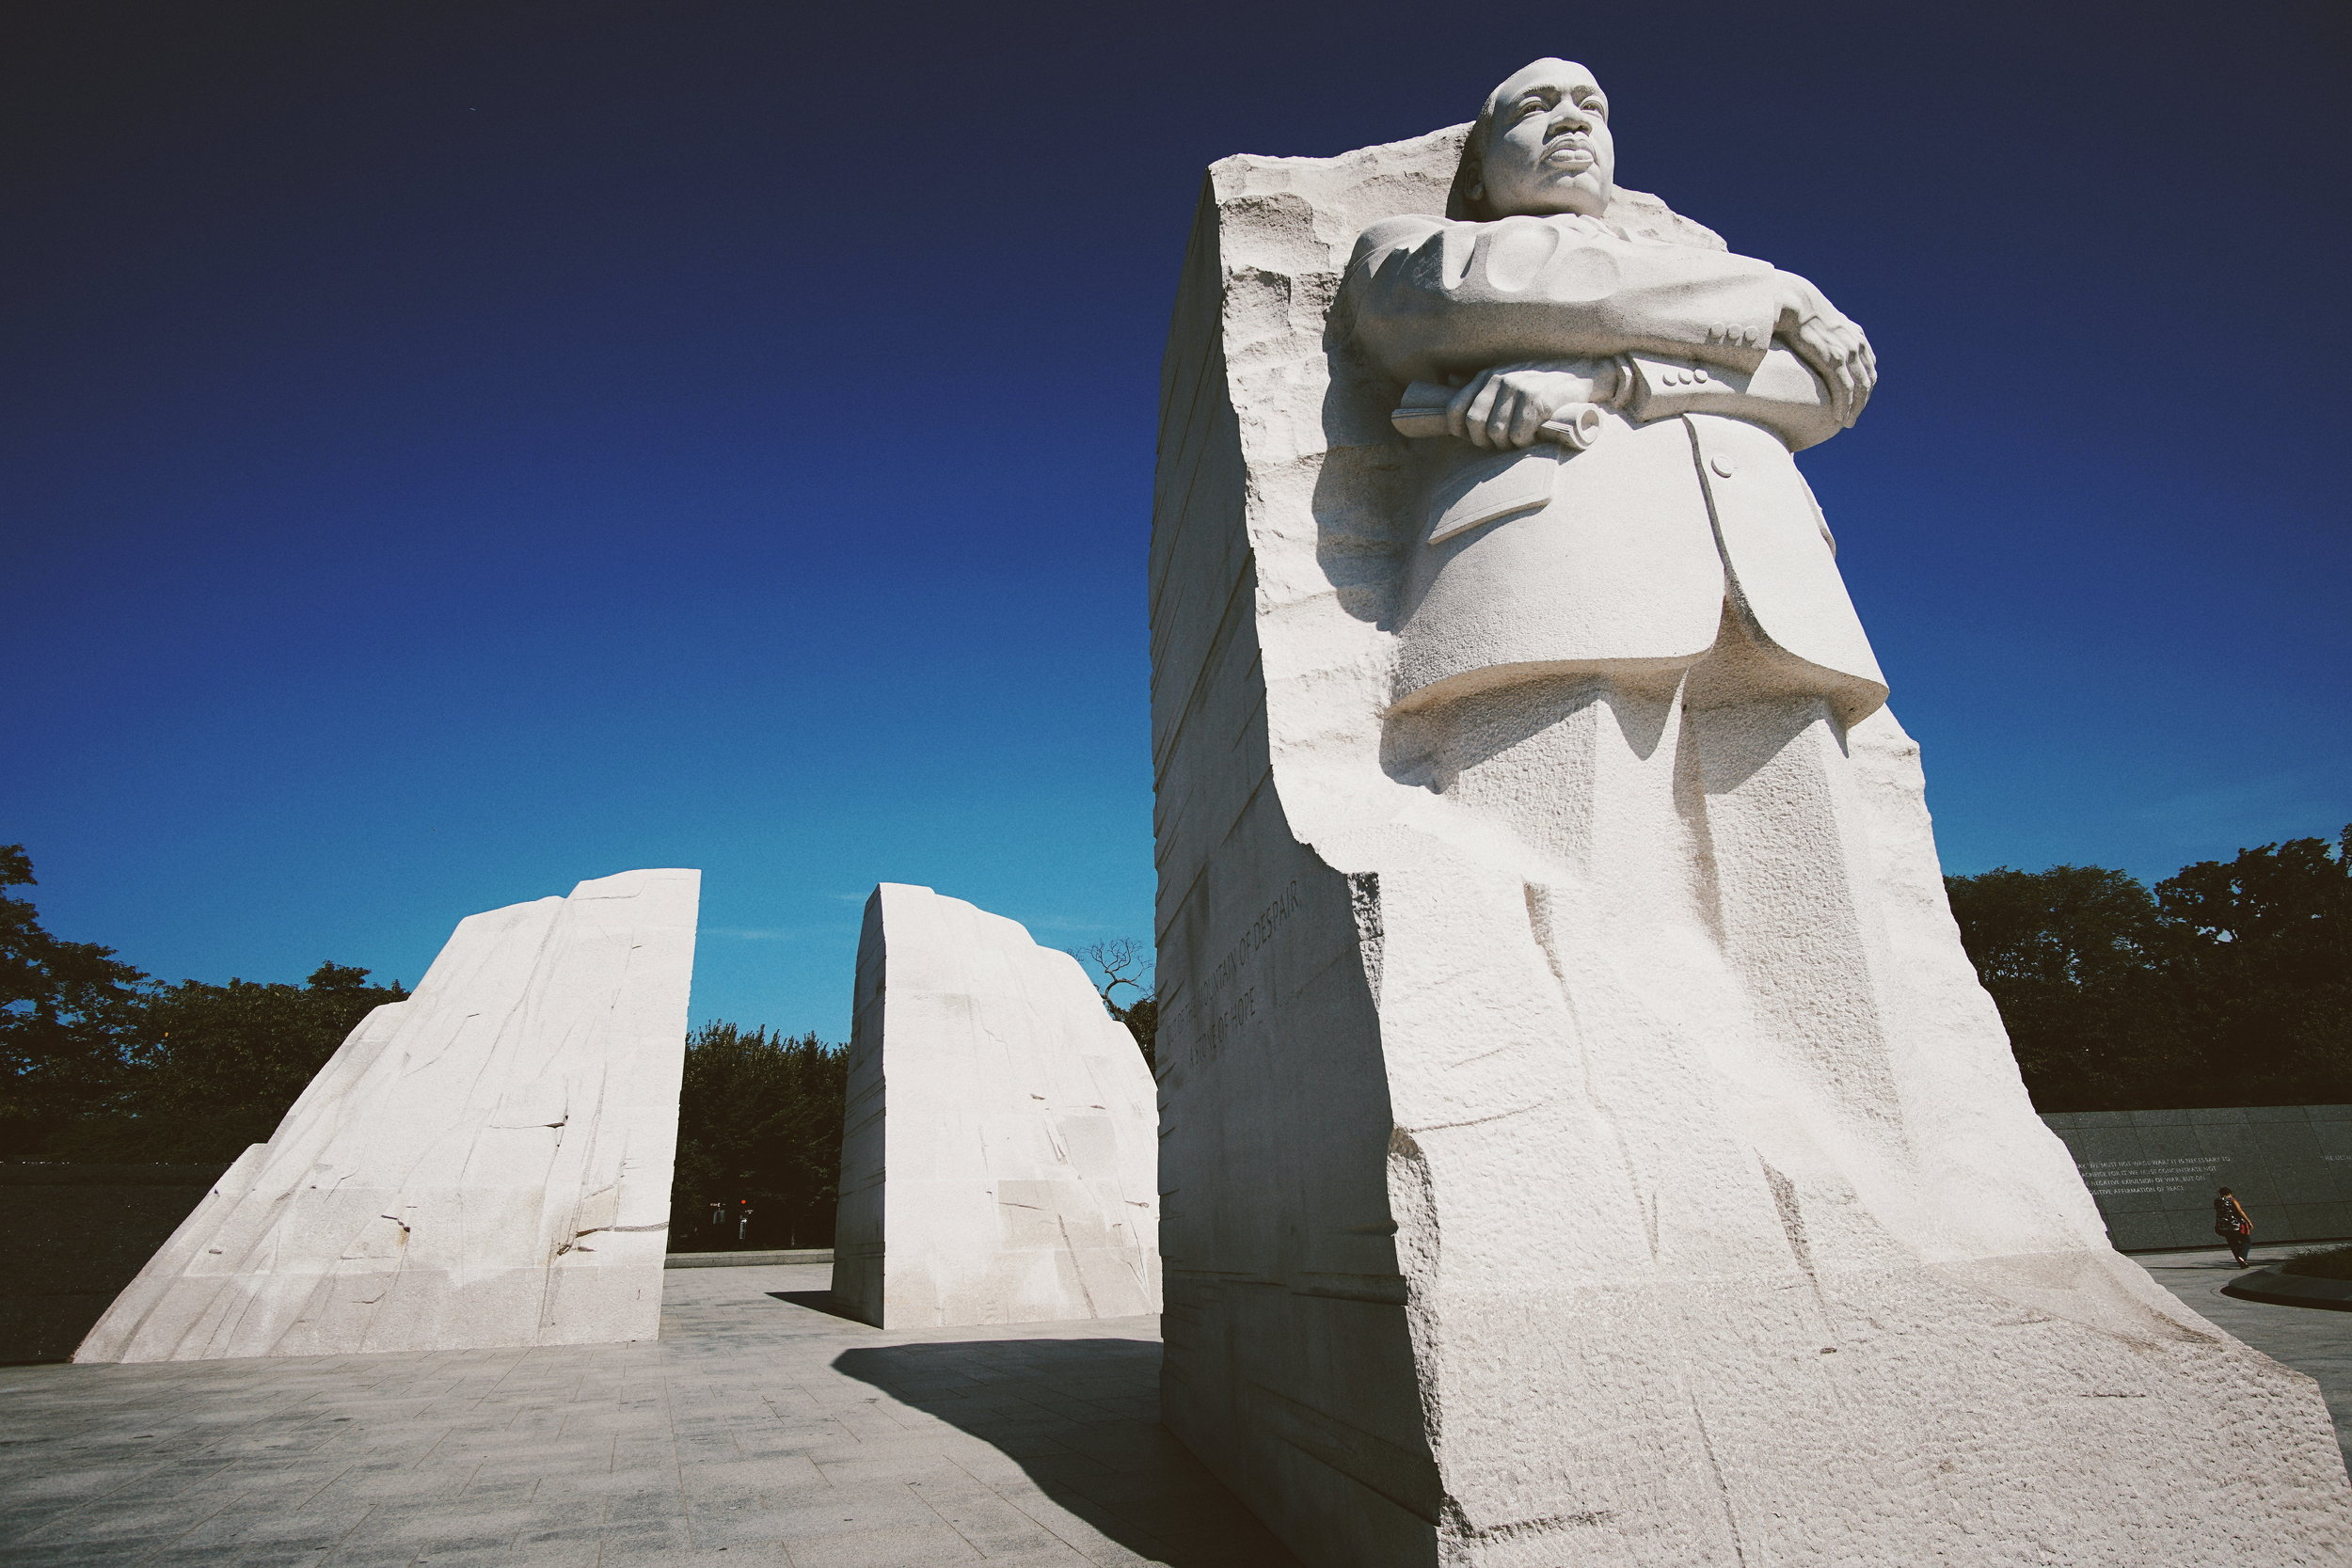 """The inspiration for the memorial design is a line from King's """" I Have A Dream """" speech: """"Out of the mountain of despair, a stone of hope."""""""